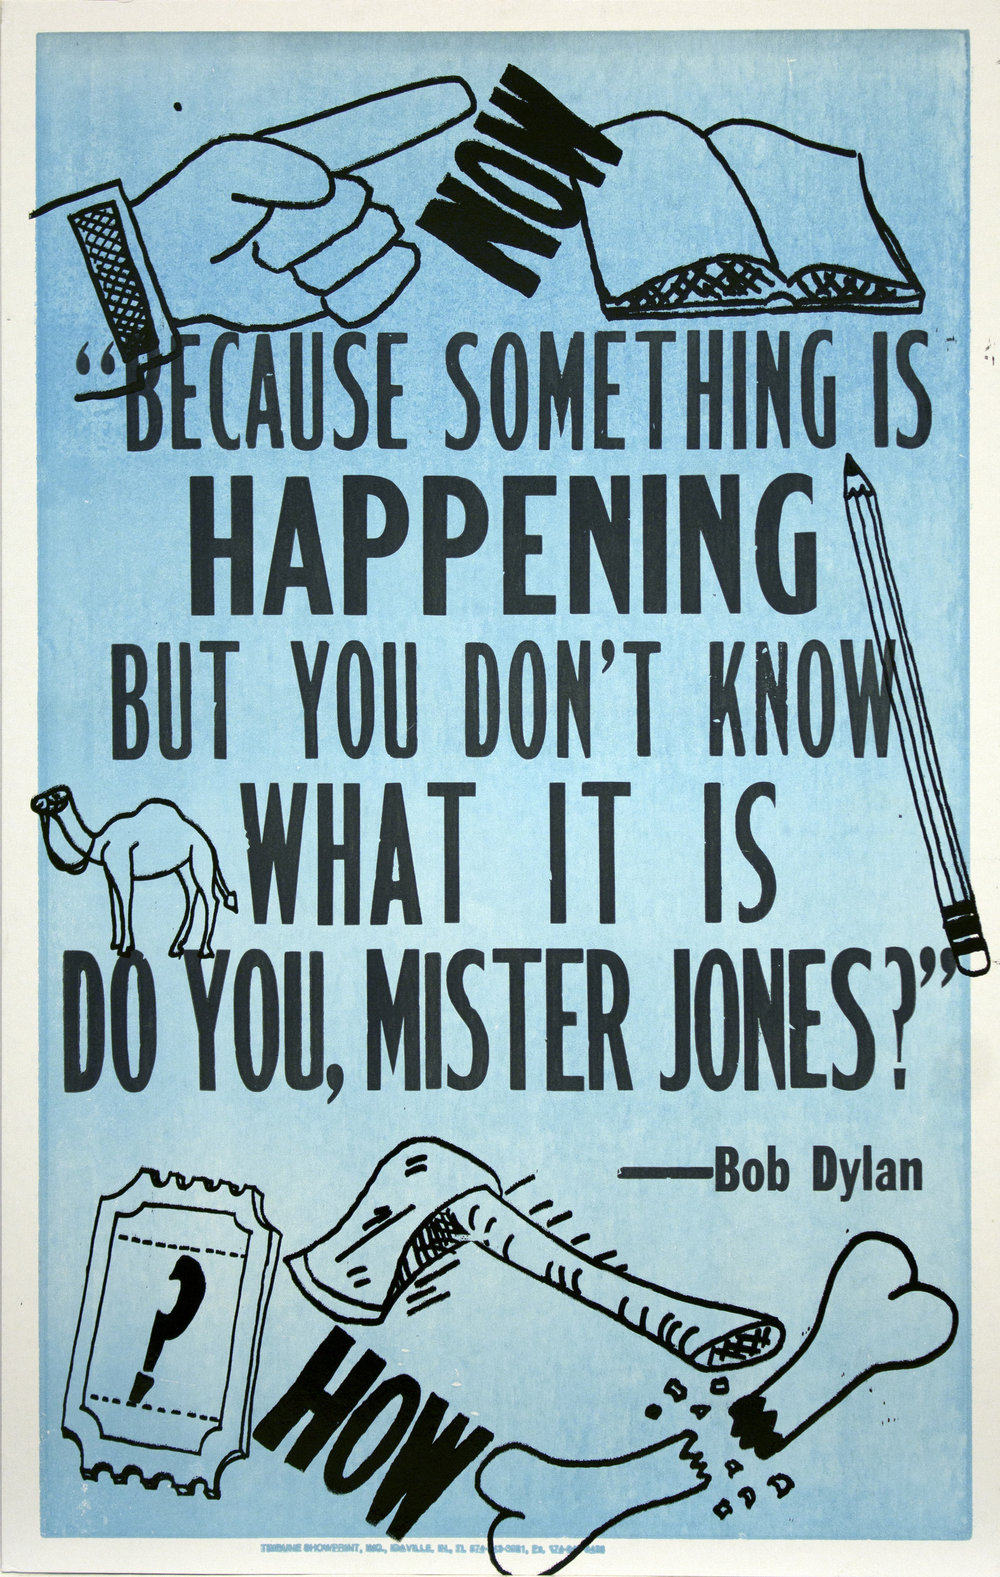 "Christopher Michlig and Jan Tumlir,  What's Happening, Allan Kaprow 3: Rebus (""BECAUSE SOMETHING IS HAPPENING BUT YOU DON'T KNOW WHAT IT IS DO YOU, MISTER JONES"" – Bob Dylan) , 2017. Silkscreen and letterpress on poster board, 14 x 22 inches"